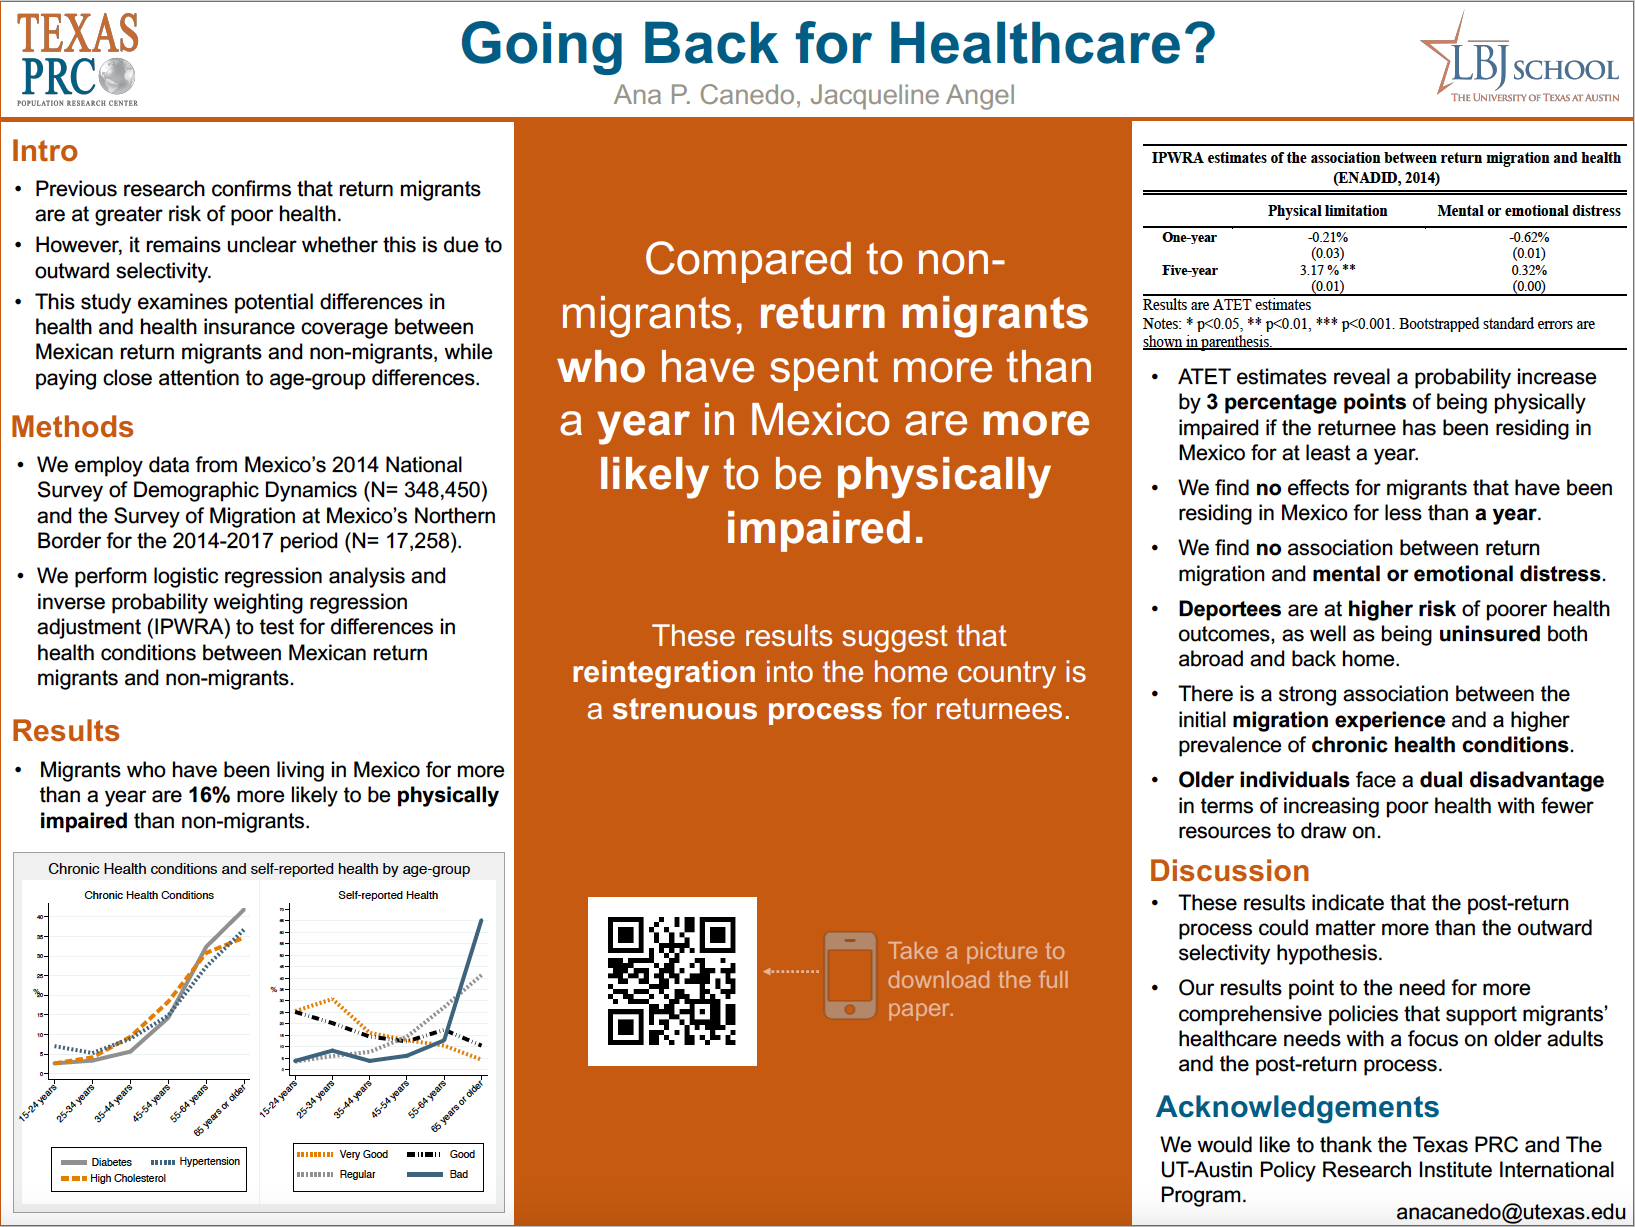 Innovation Bound 2019 research poster: Going Back for Health Care?